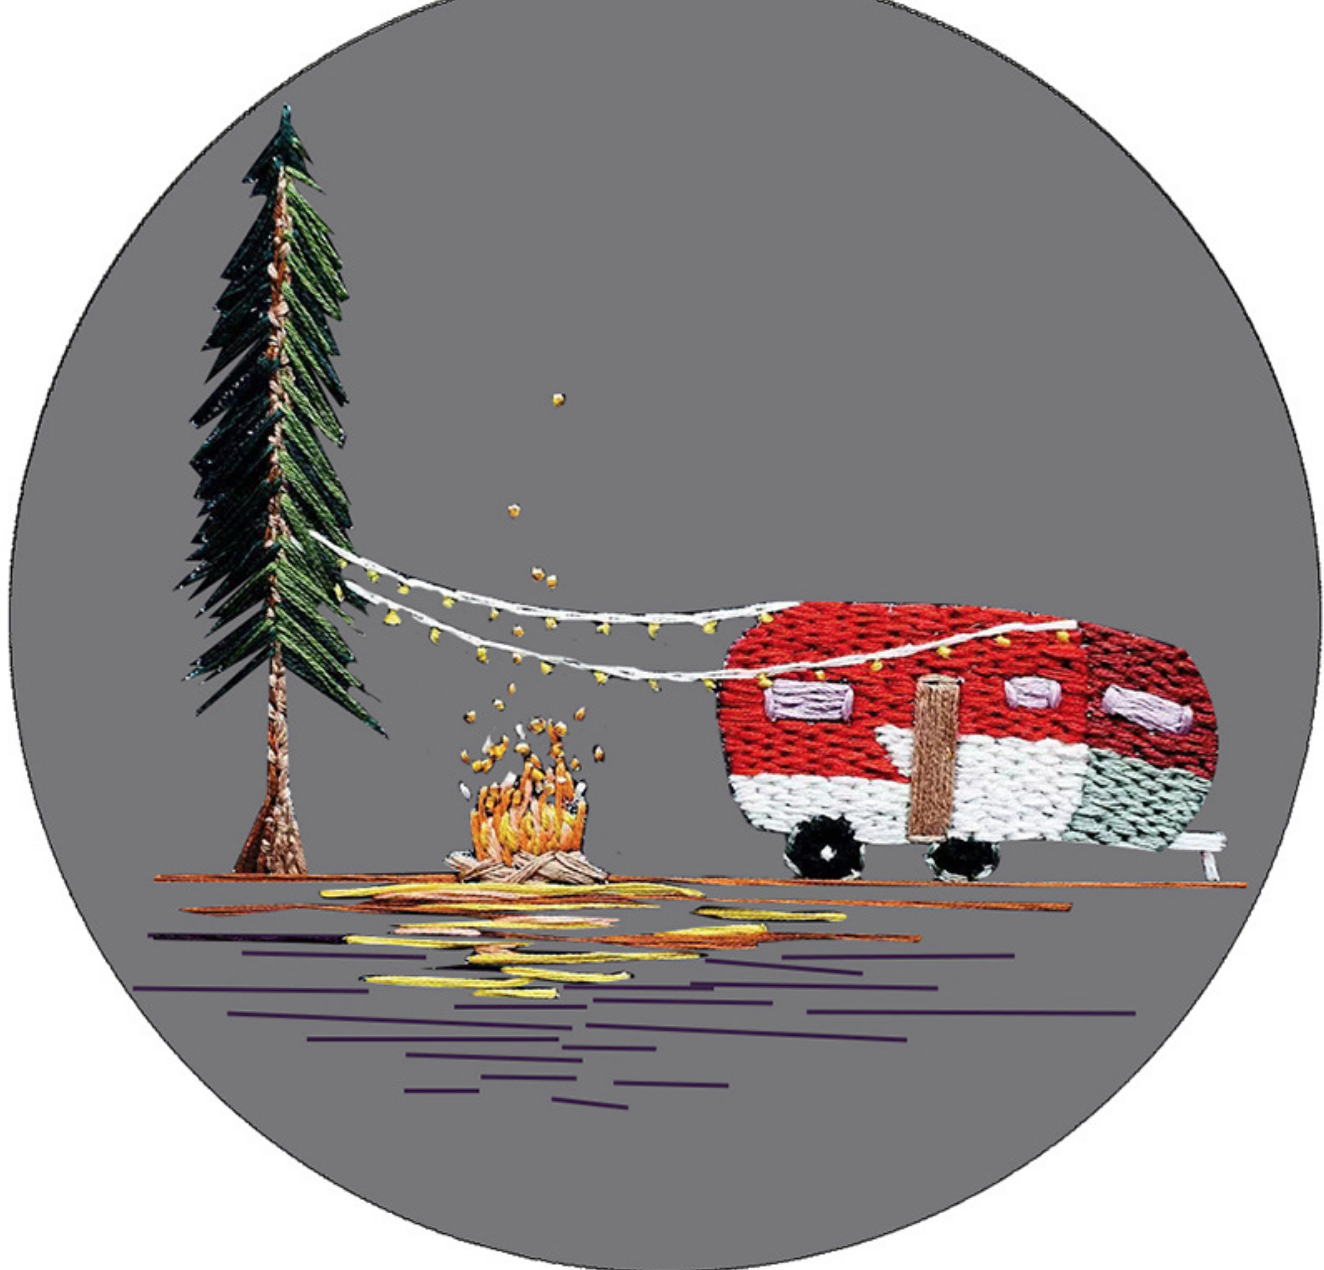 Camper with Campfire on Black Embroidery